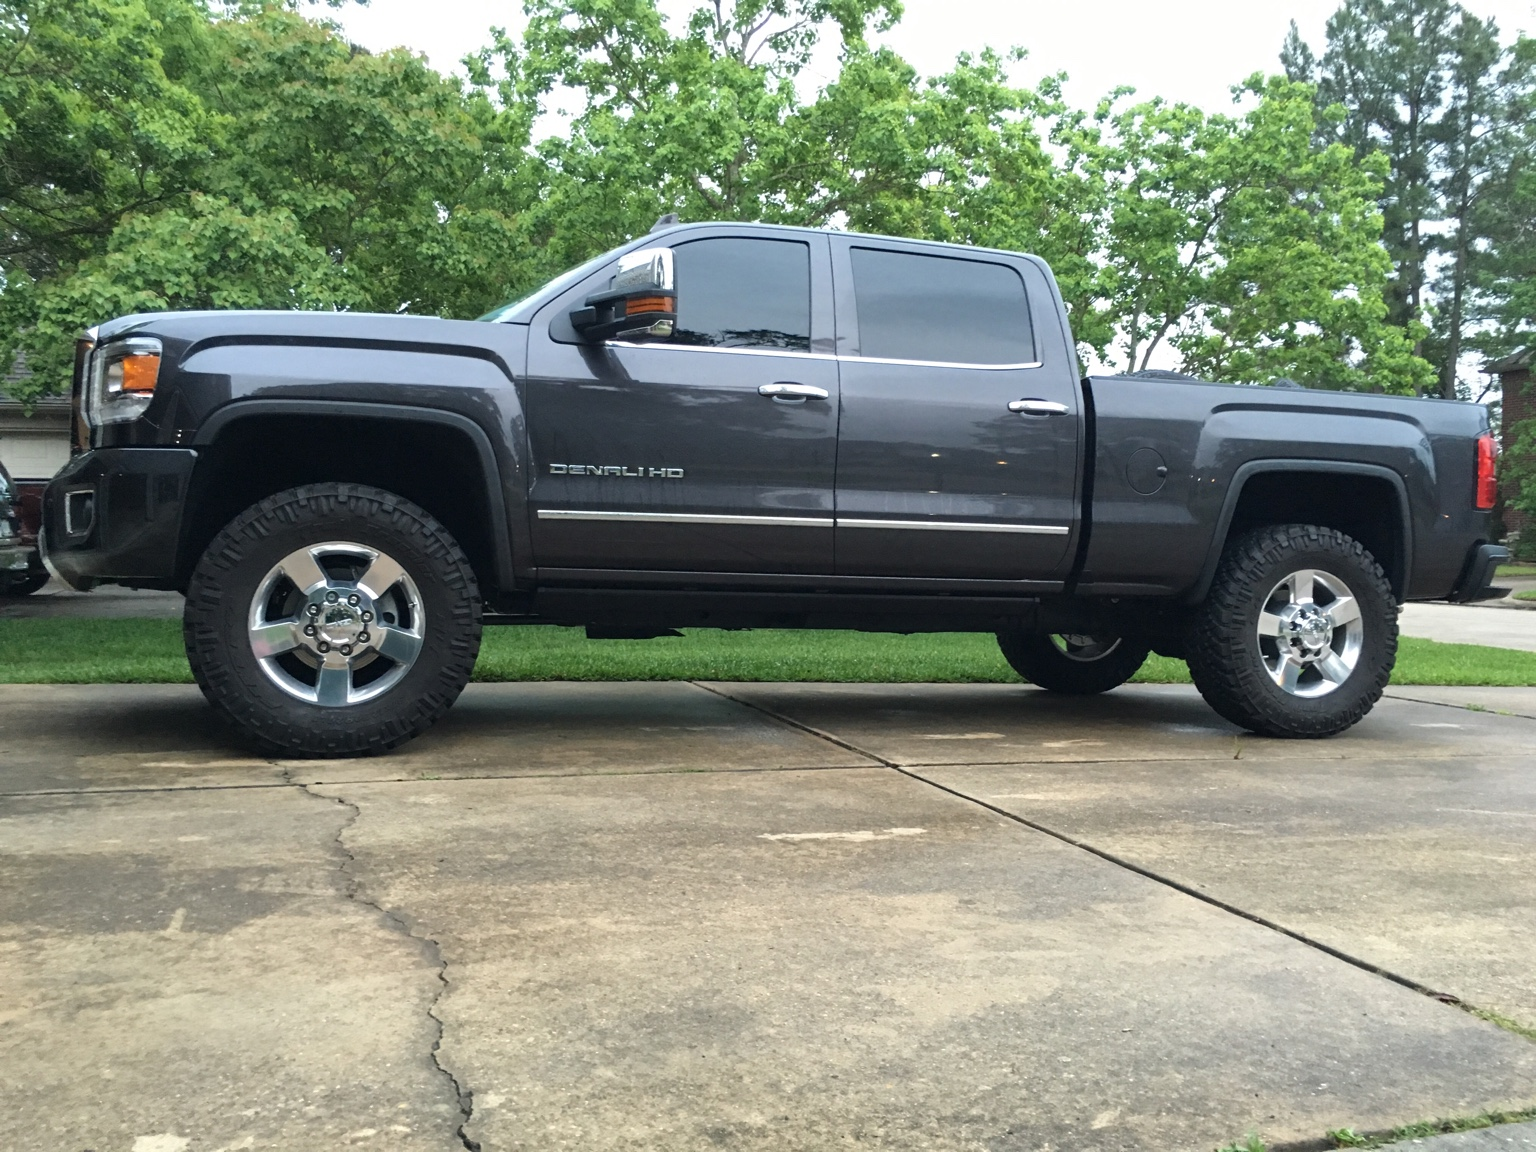 Leveled Lml On Stock 20 S W Mud Tires I Need Pics And